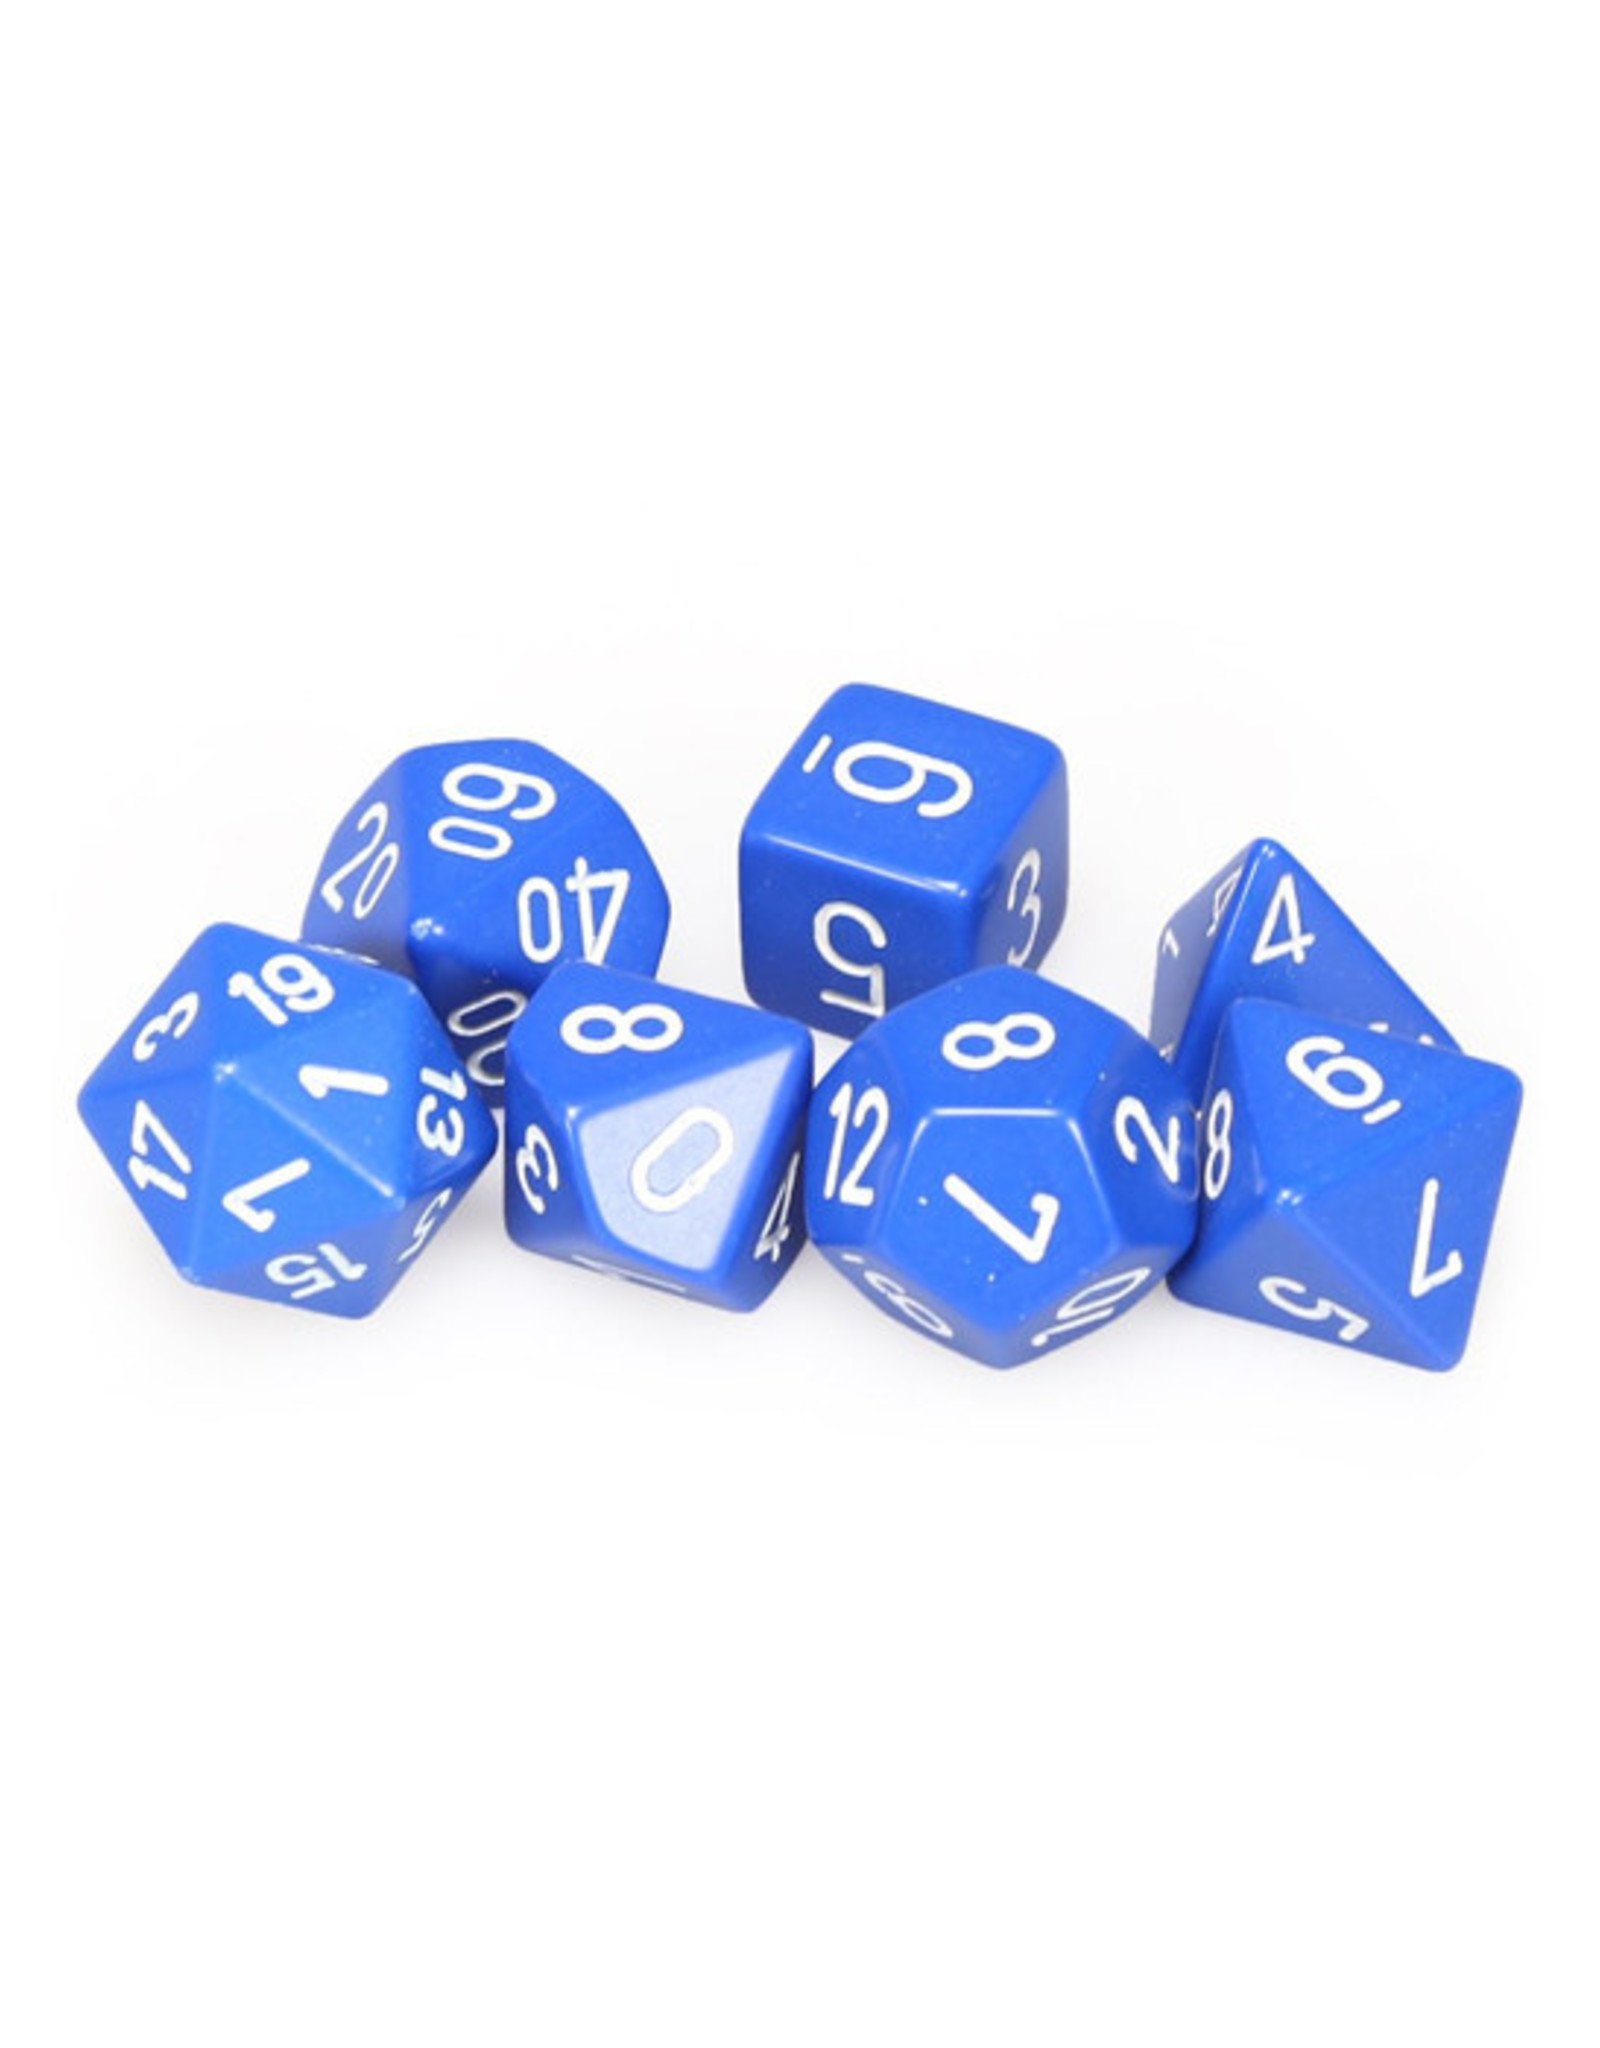 Chessex Chessex: Poly 7 Set - Opaque - Blue w/ White